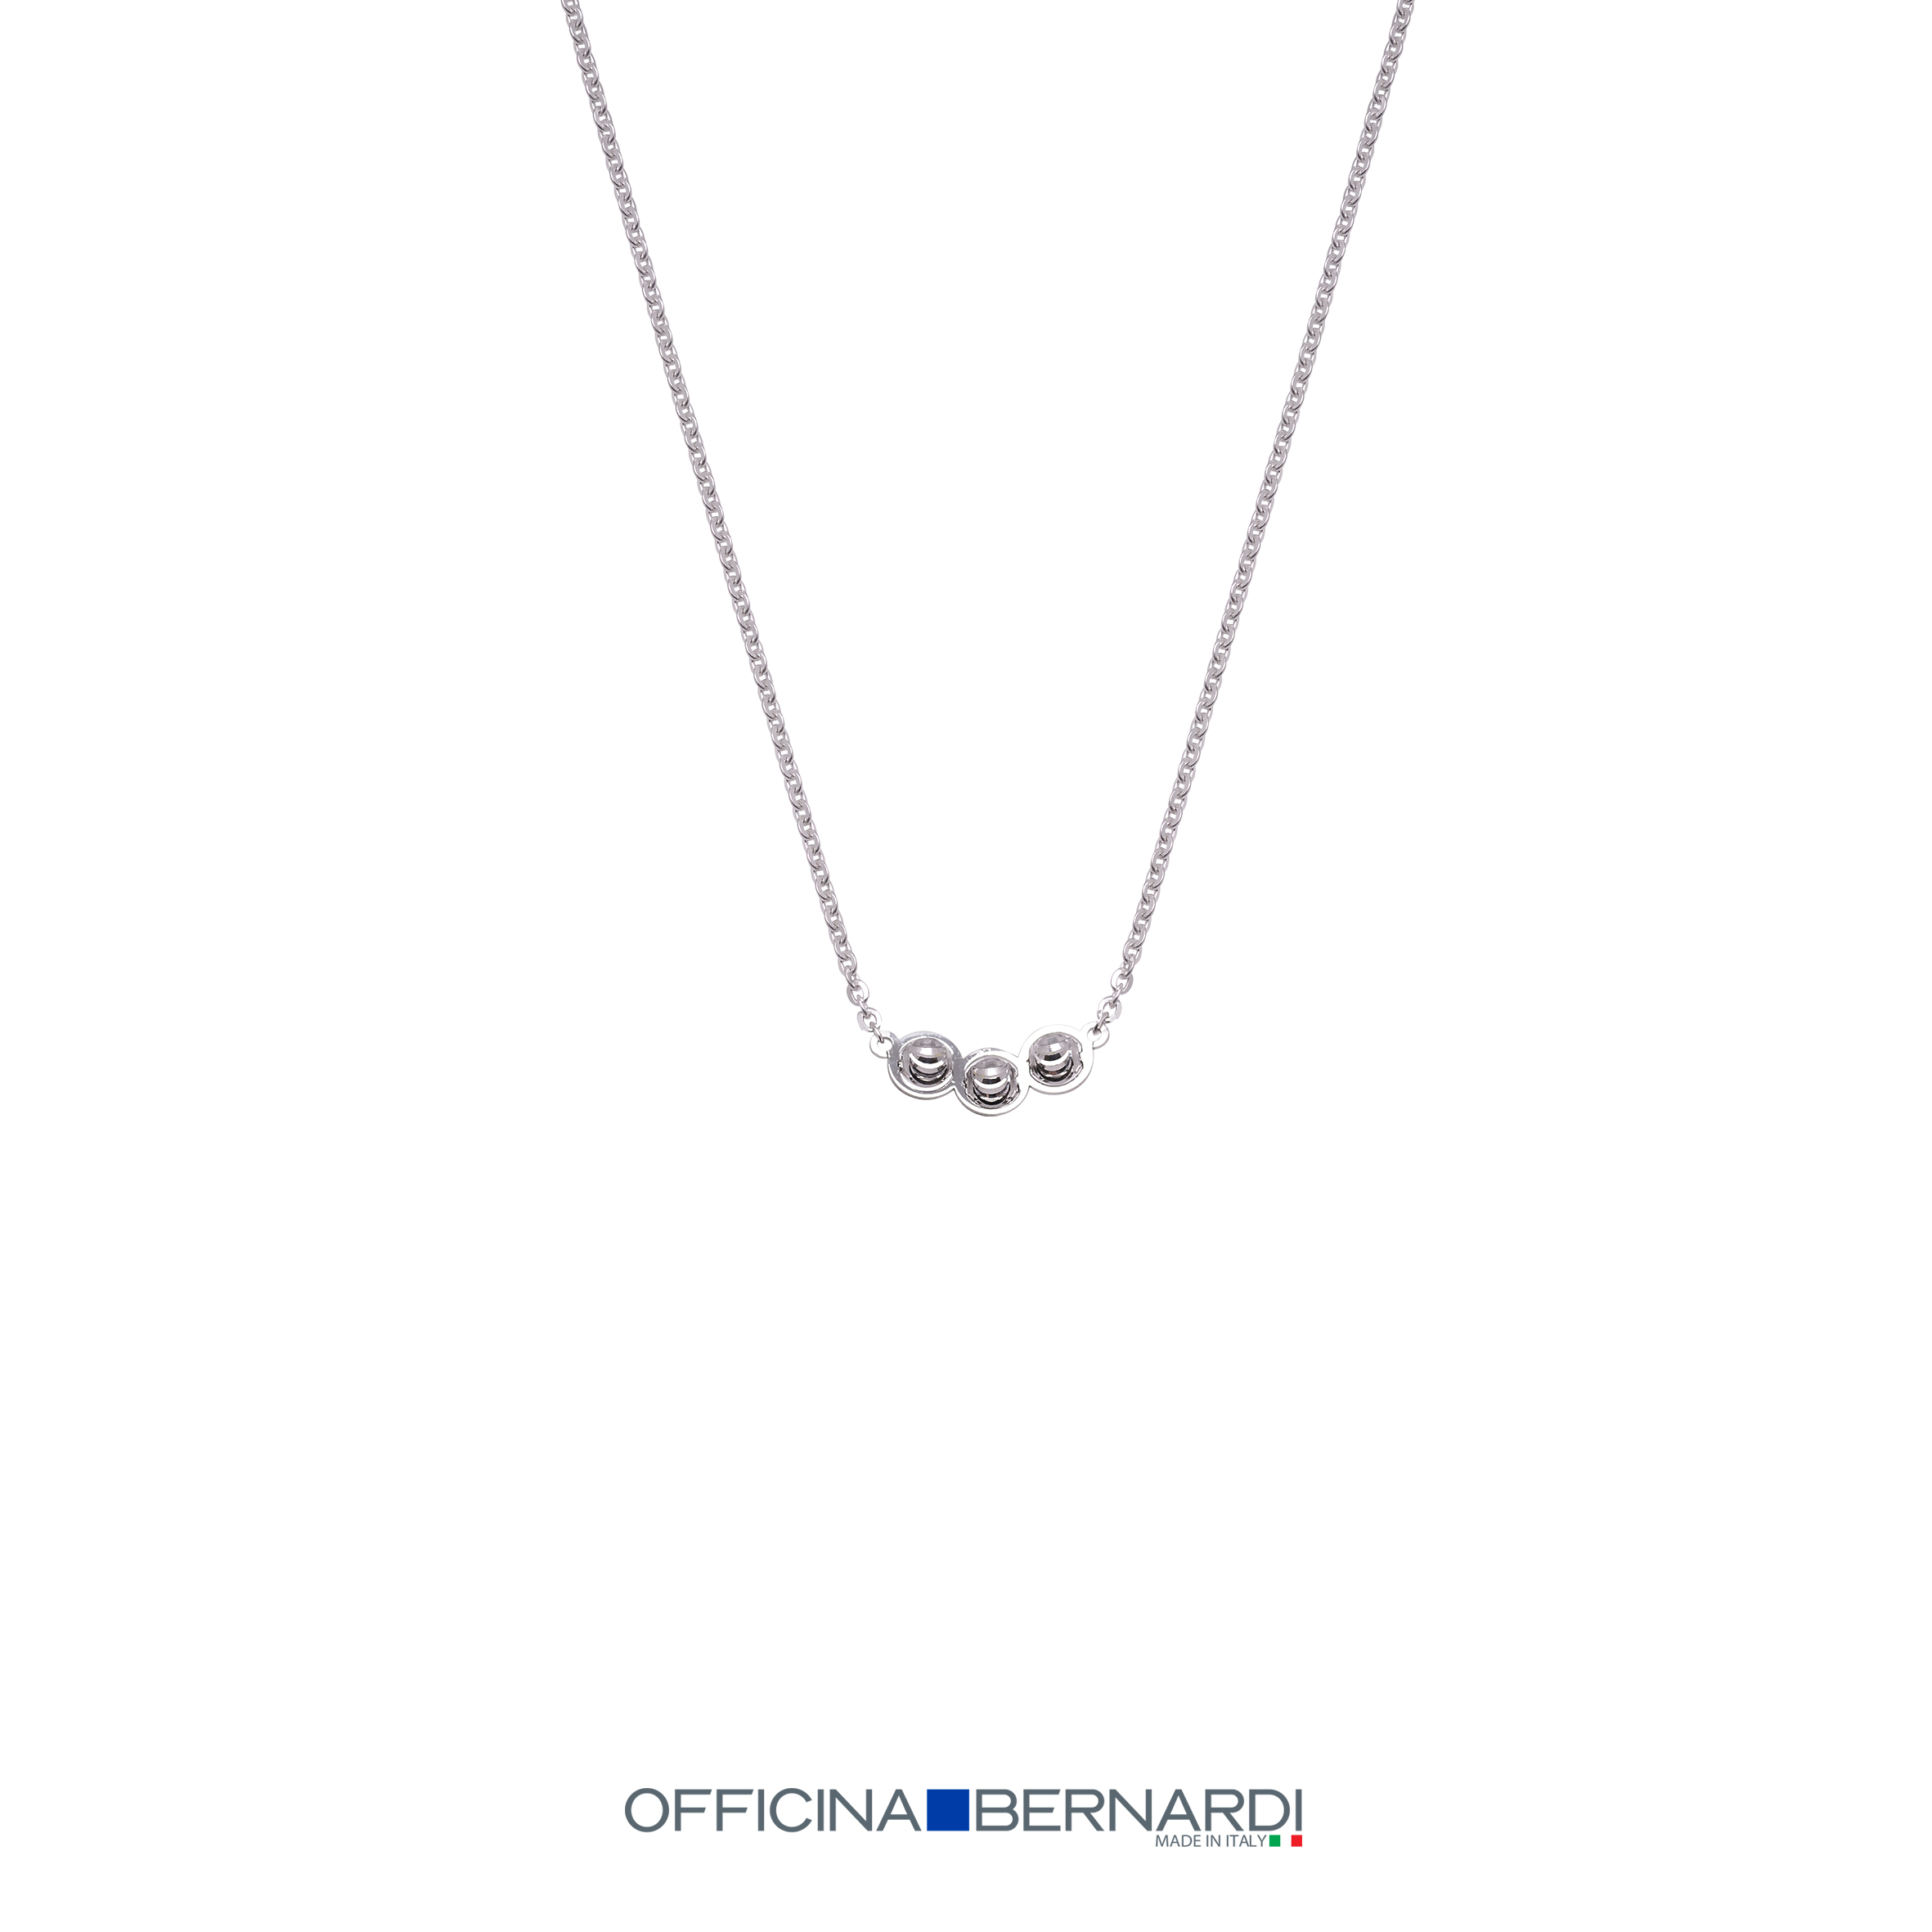 Three Diamond cut beads stationed in center of cable chain necklace, sterling silver Officina Bernardi, 16 inches